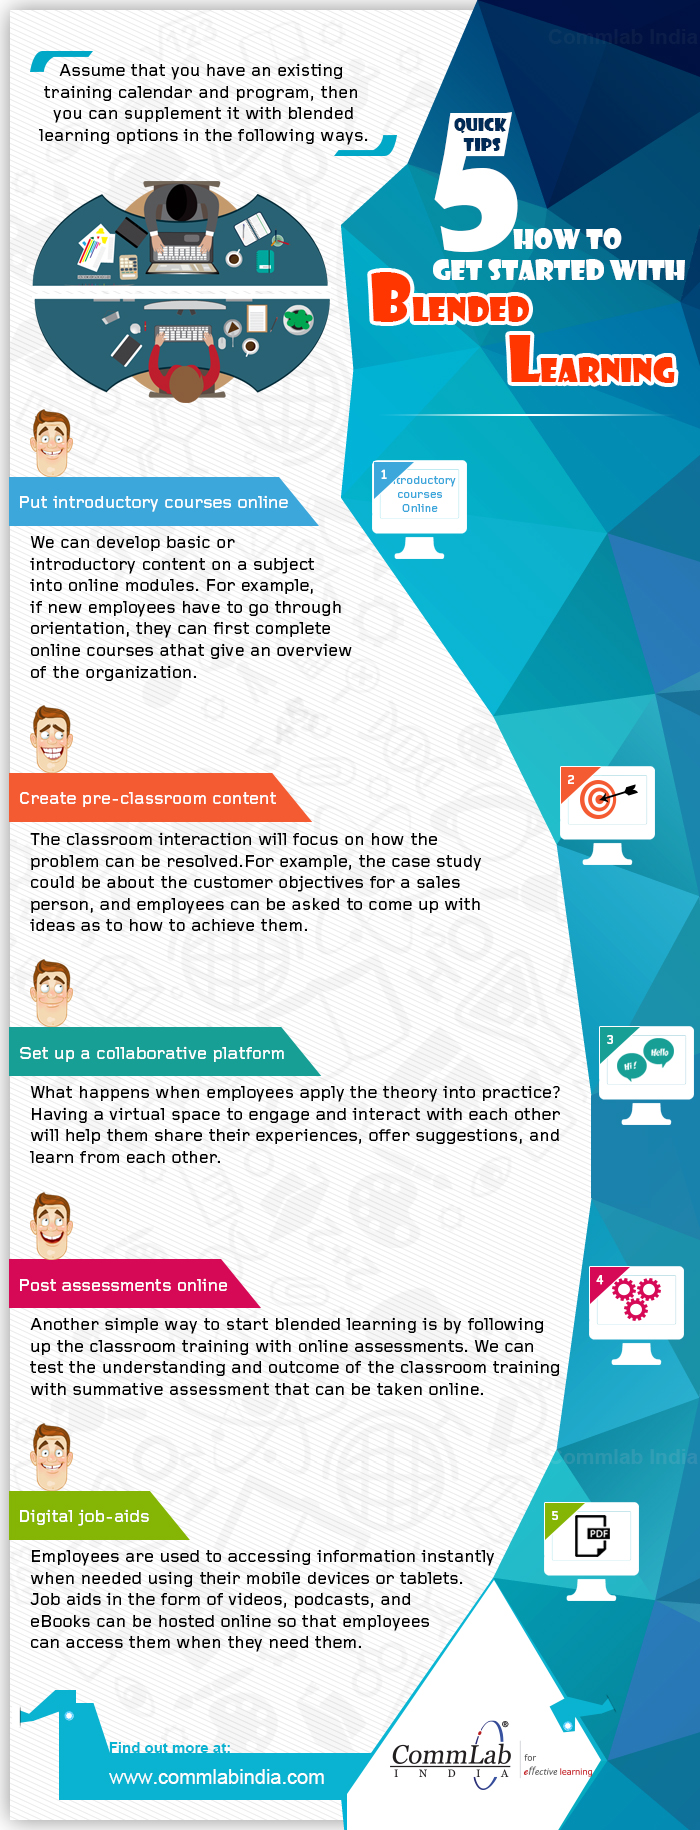 5 Proven Tips to Get Started With Blended Learning [Infographic]